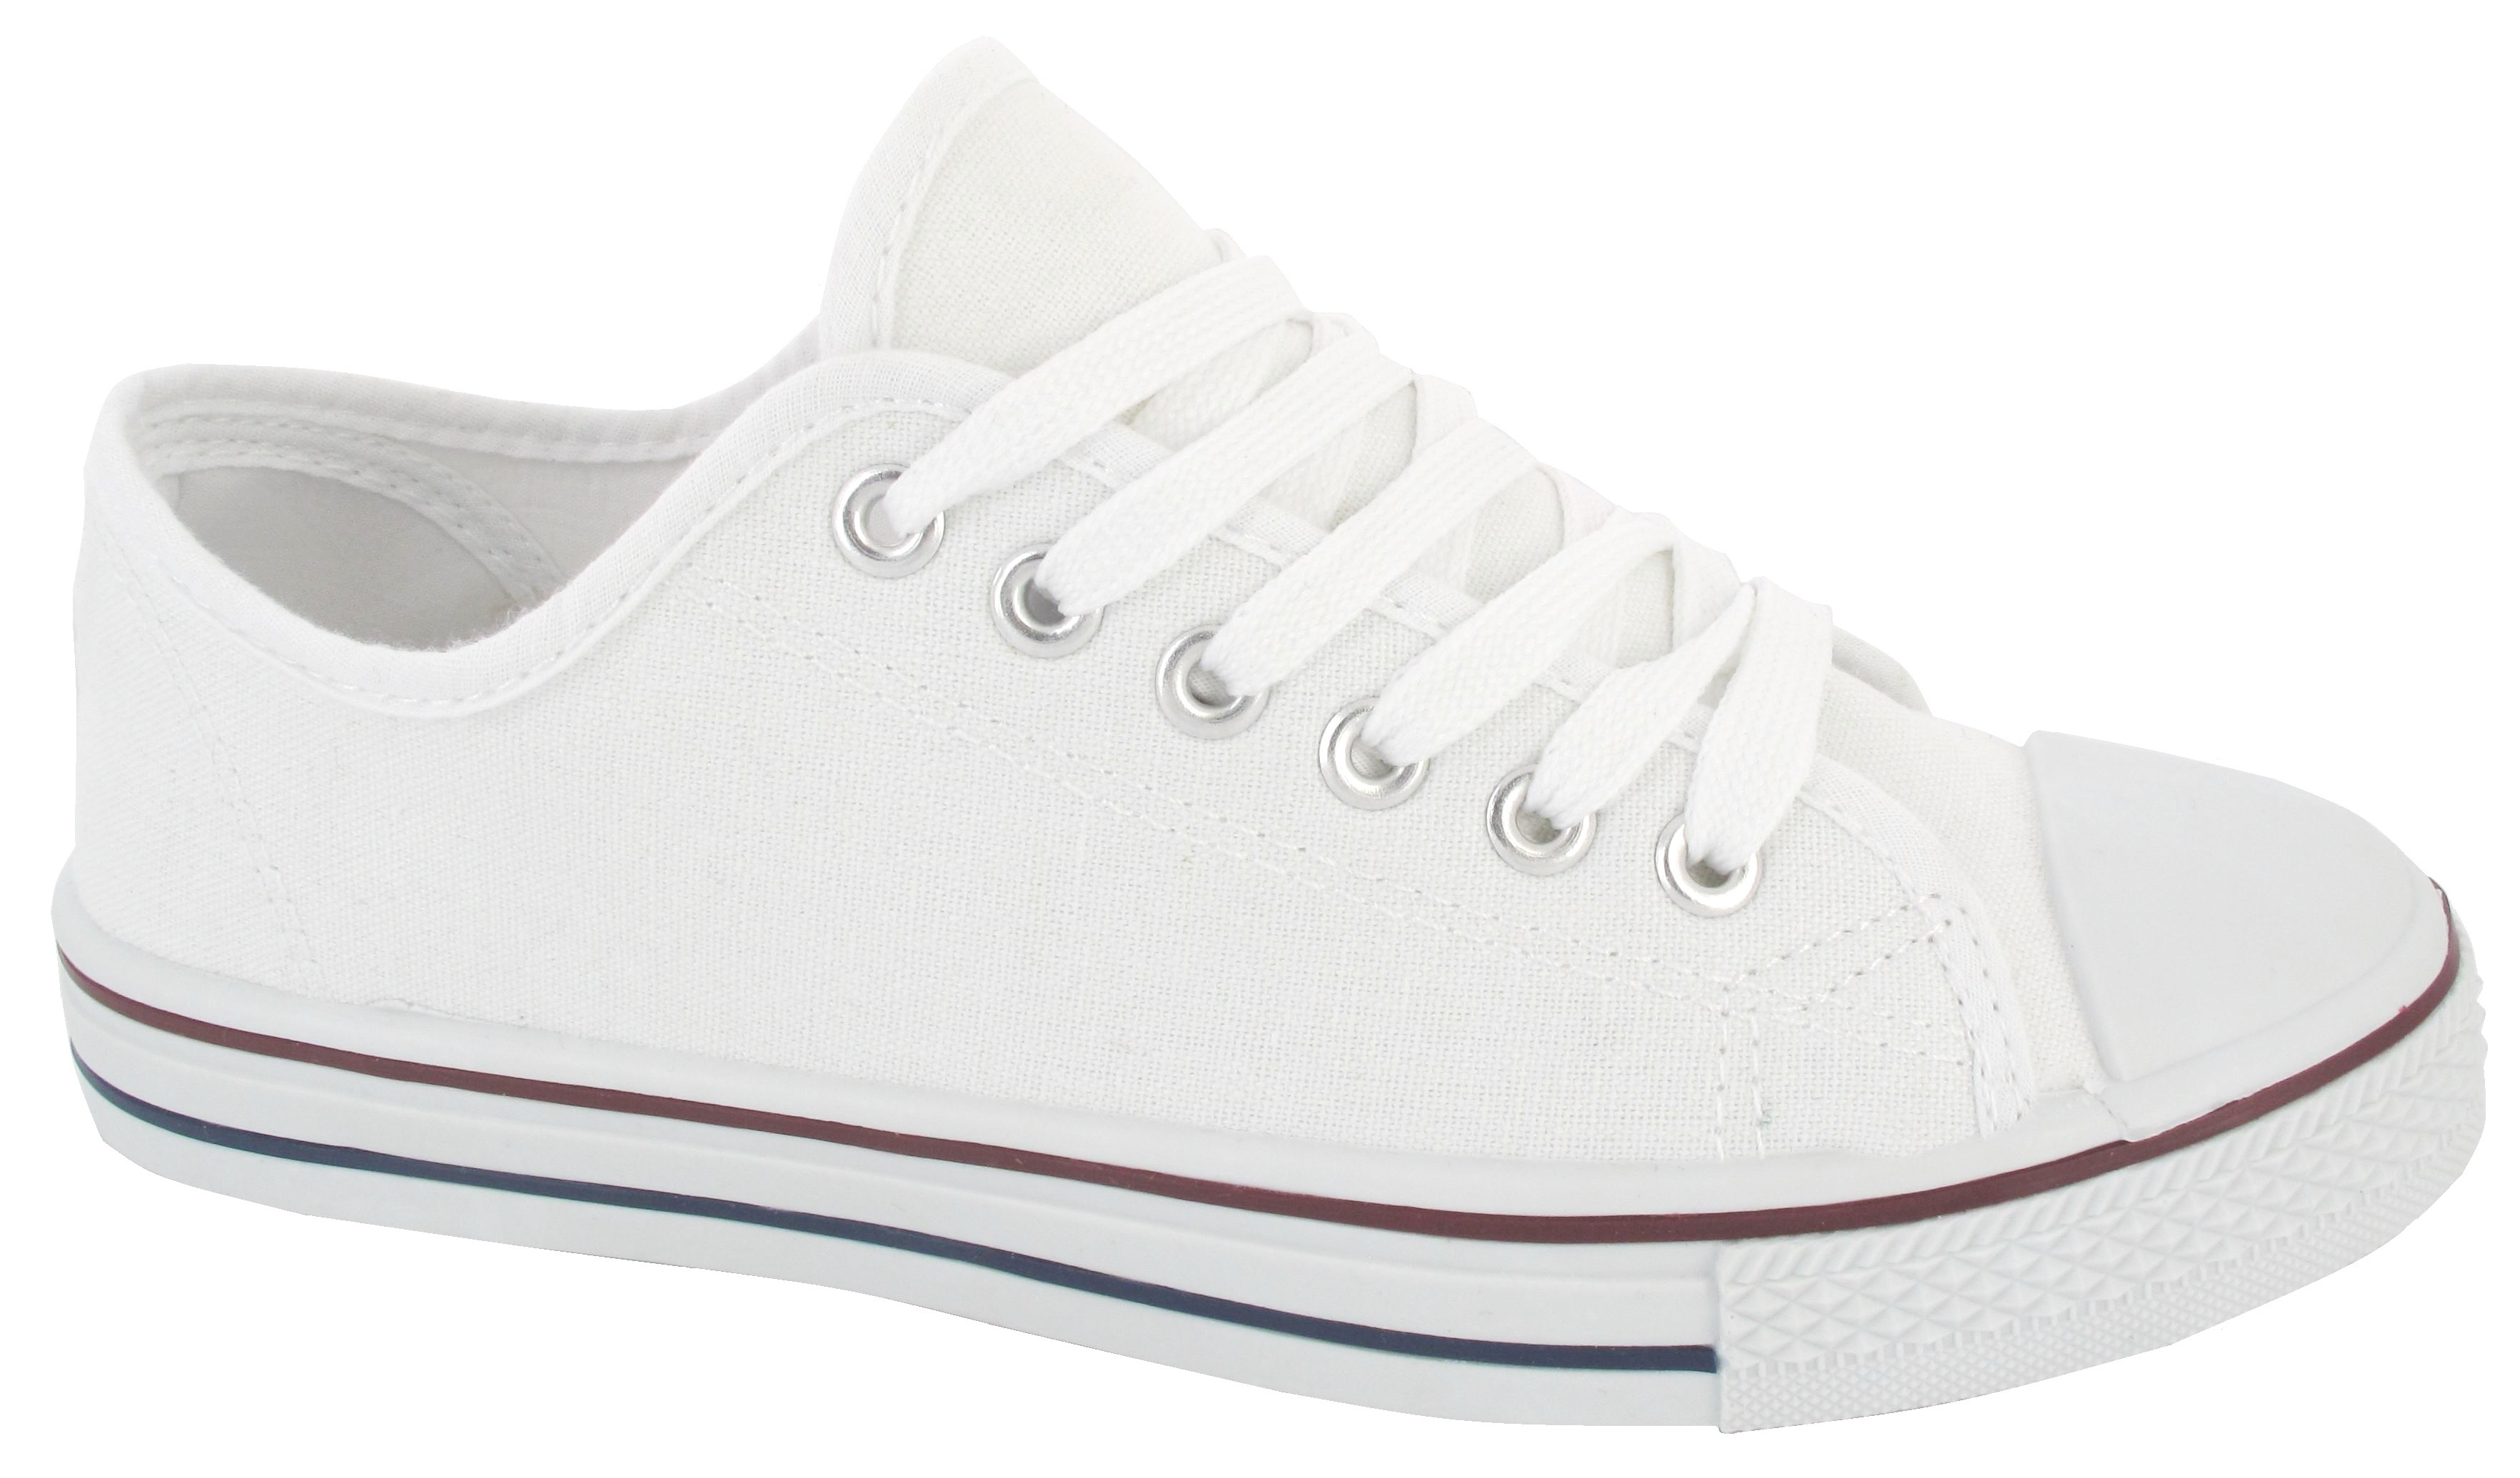 loadingbassqz.cf: white plimsolls. From The Community. Amazon Try Prime All VANS Unisex Authentic True White Canvas VNEE3W00 Mens , Womens Mirak GB Mens Plimsolls/Trainers / Sport Shoes. by Mirak. $ $ 10 4 out of 5 stars 3. Product Features Unisex Lace-Up Plimsoll.